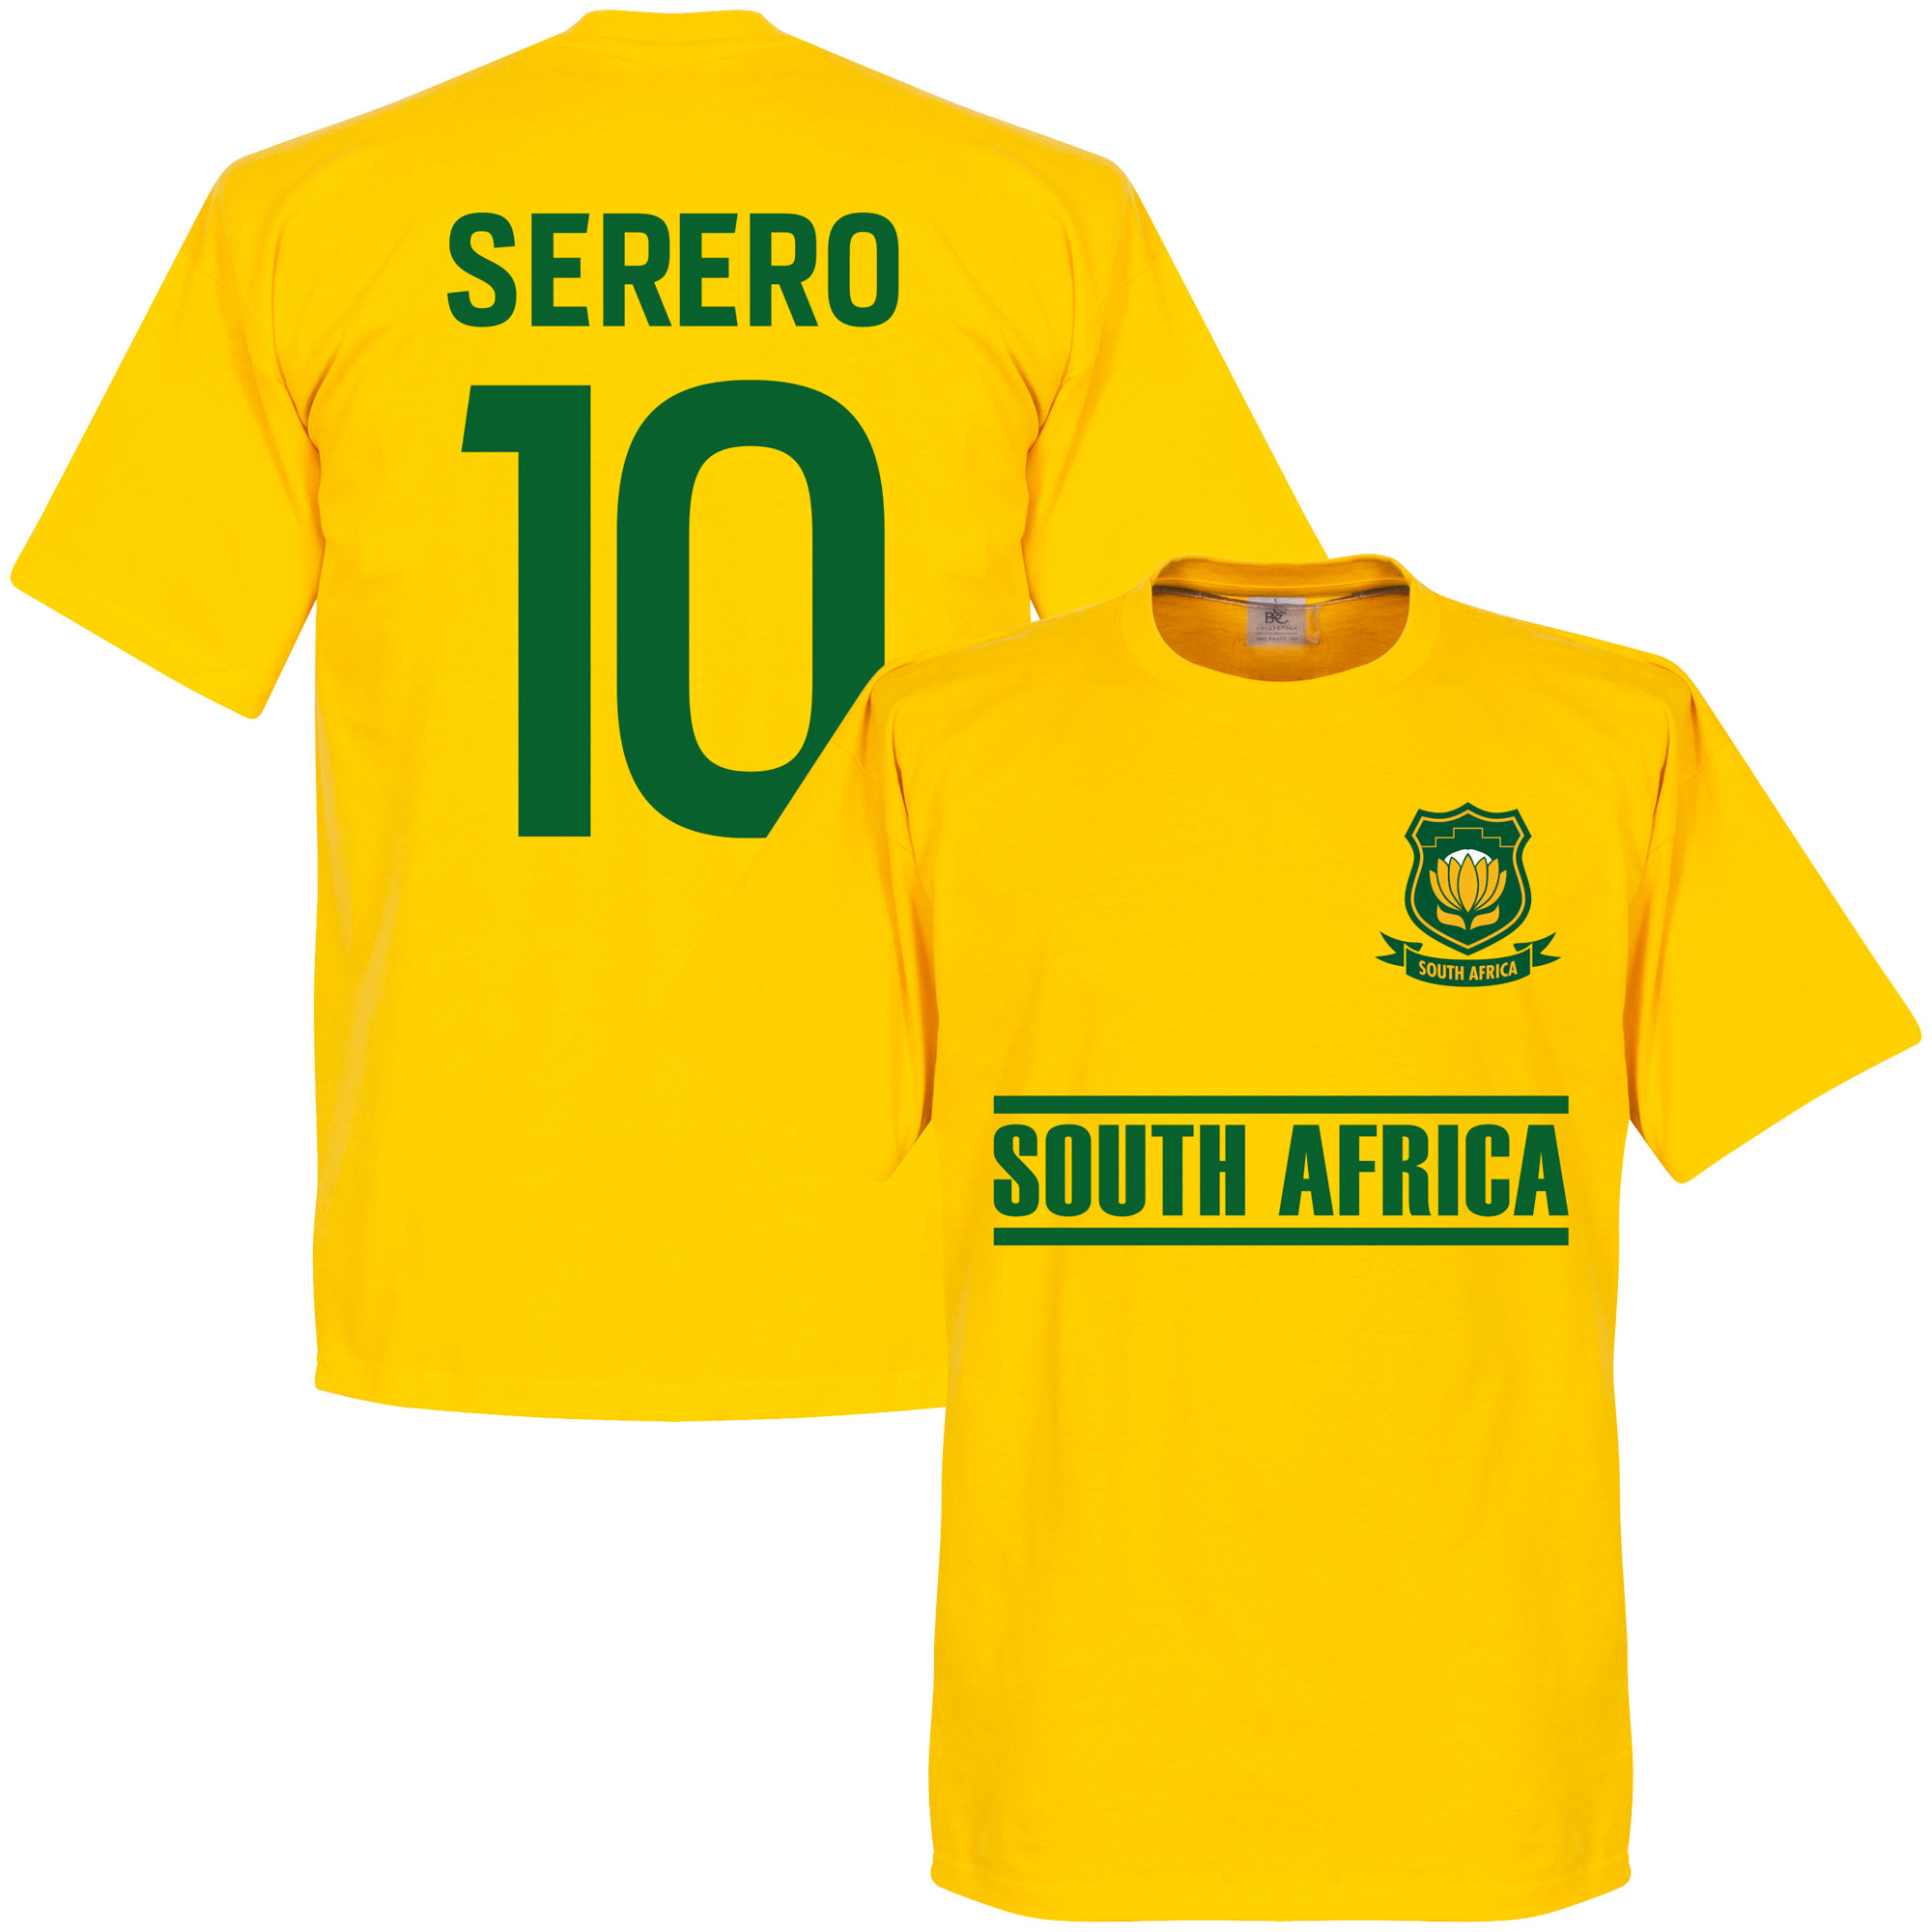 South Africa Serero Tem Tee - Yellow - XXL